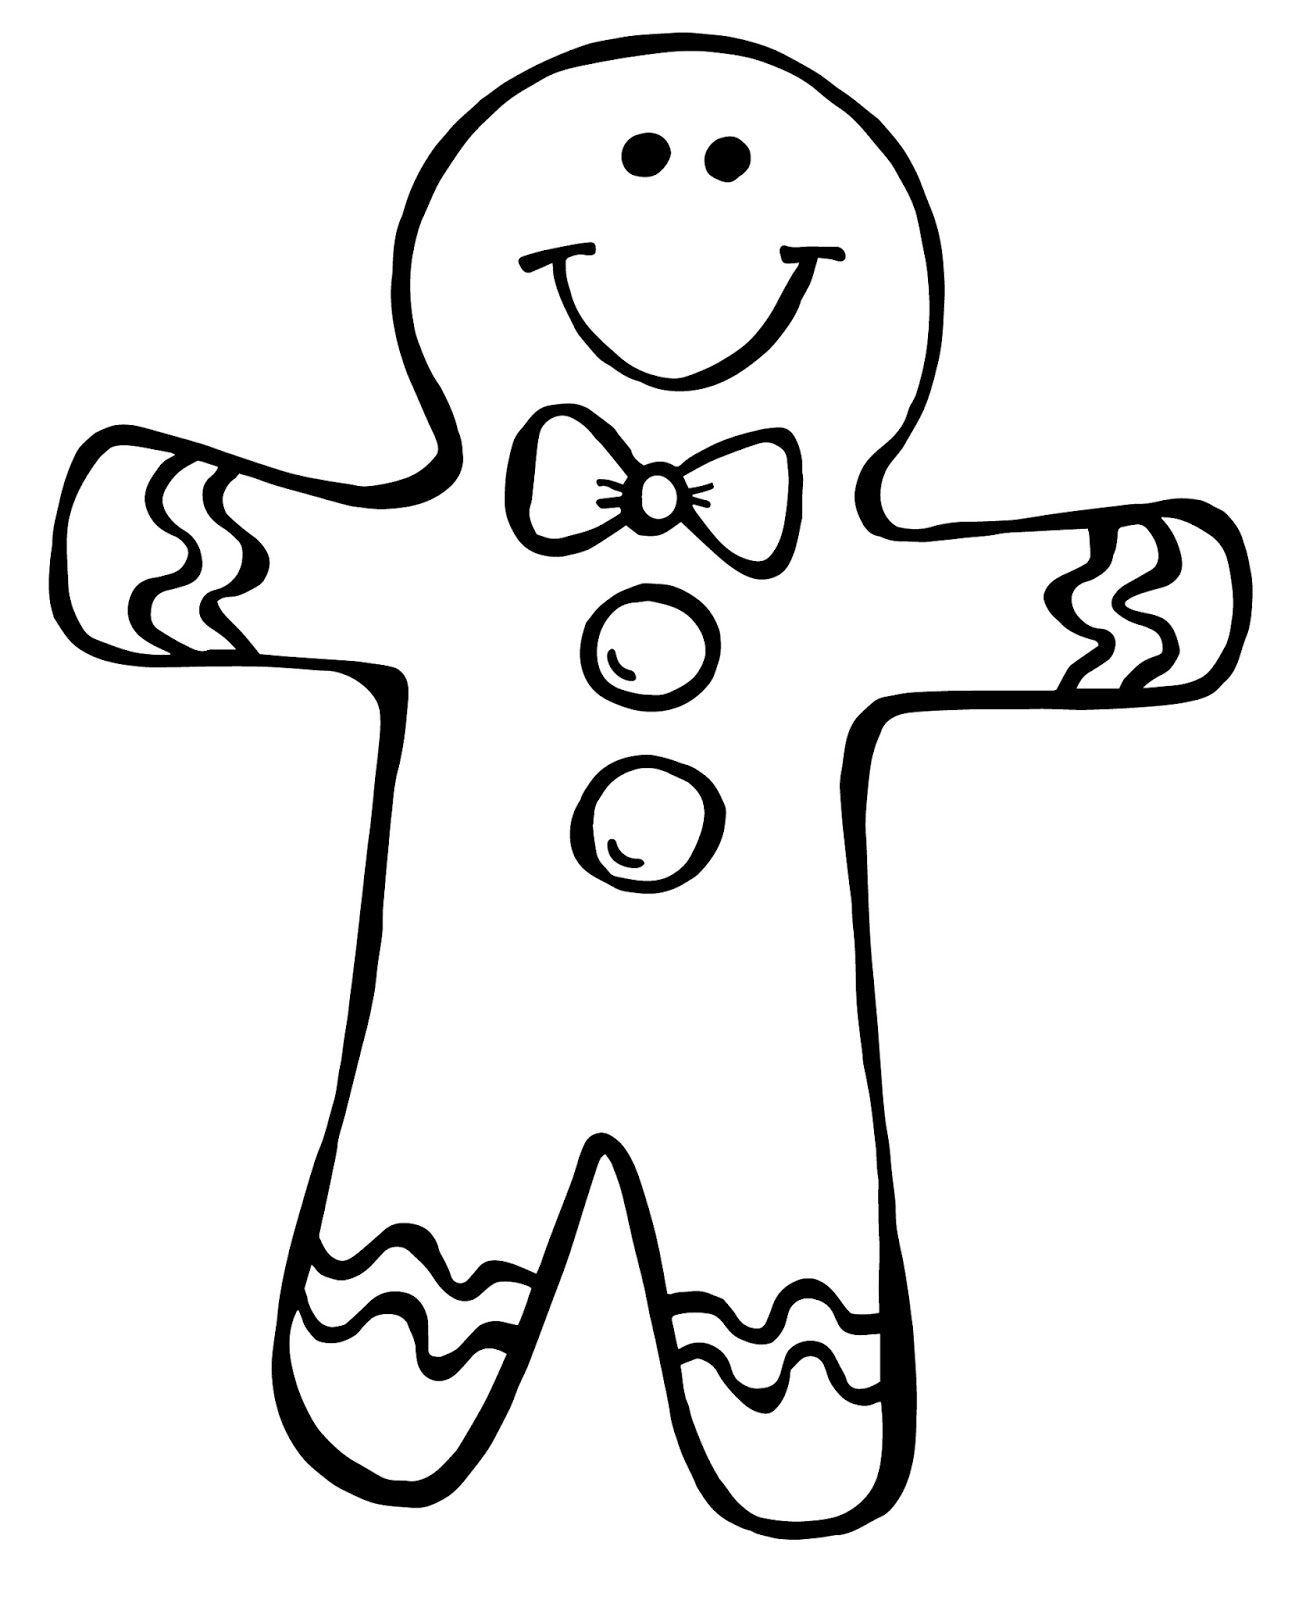 The Art Of Teaching In Today S World Gingerbread Boy Gingerbread Cookie Coloring Page